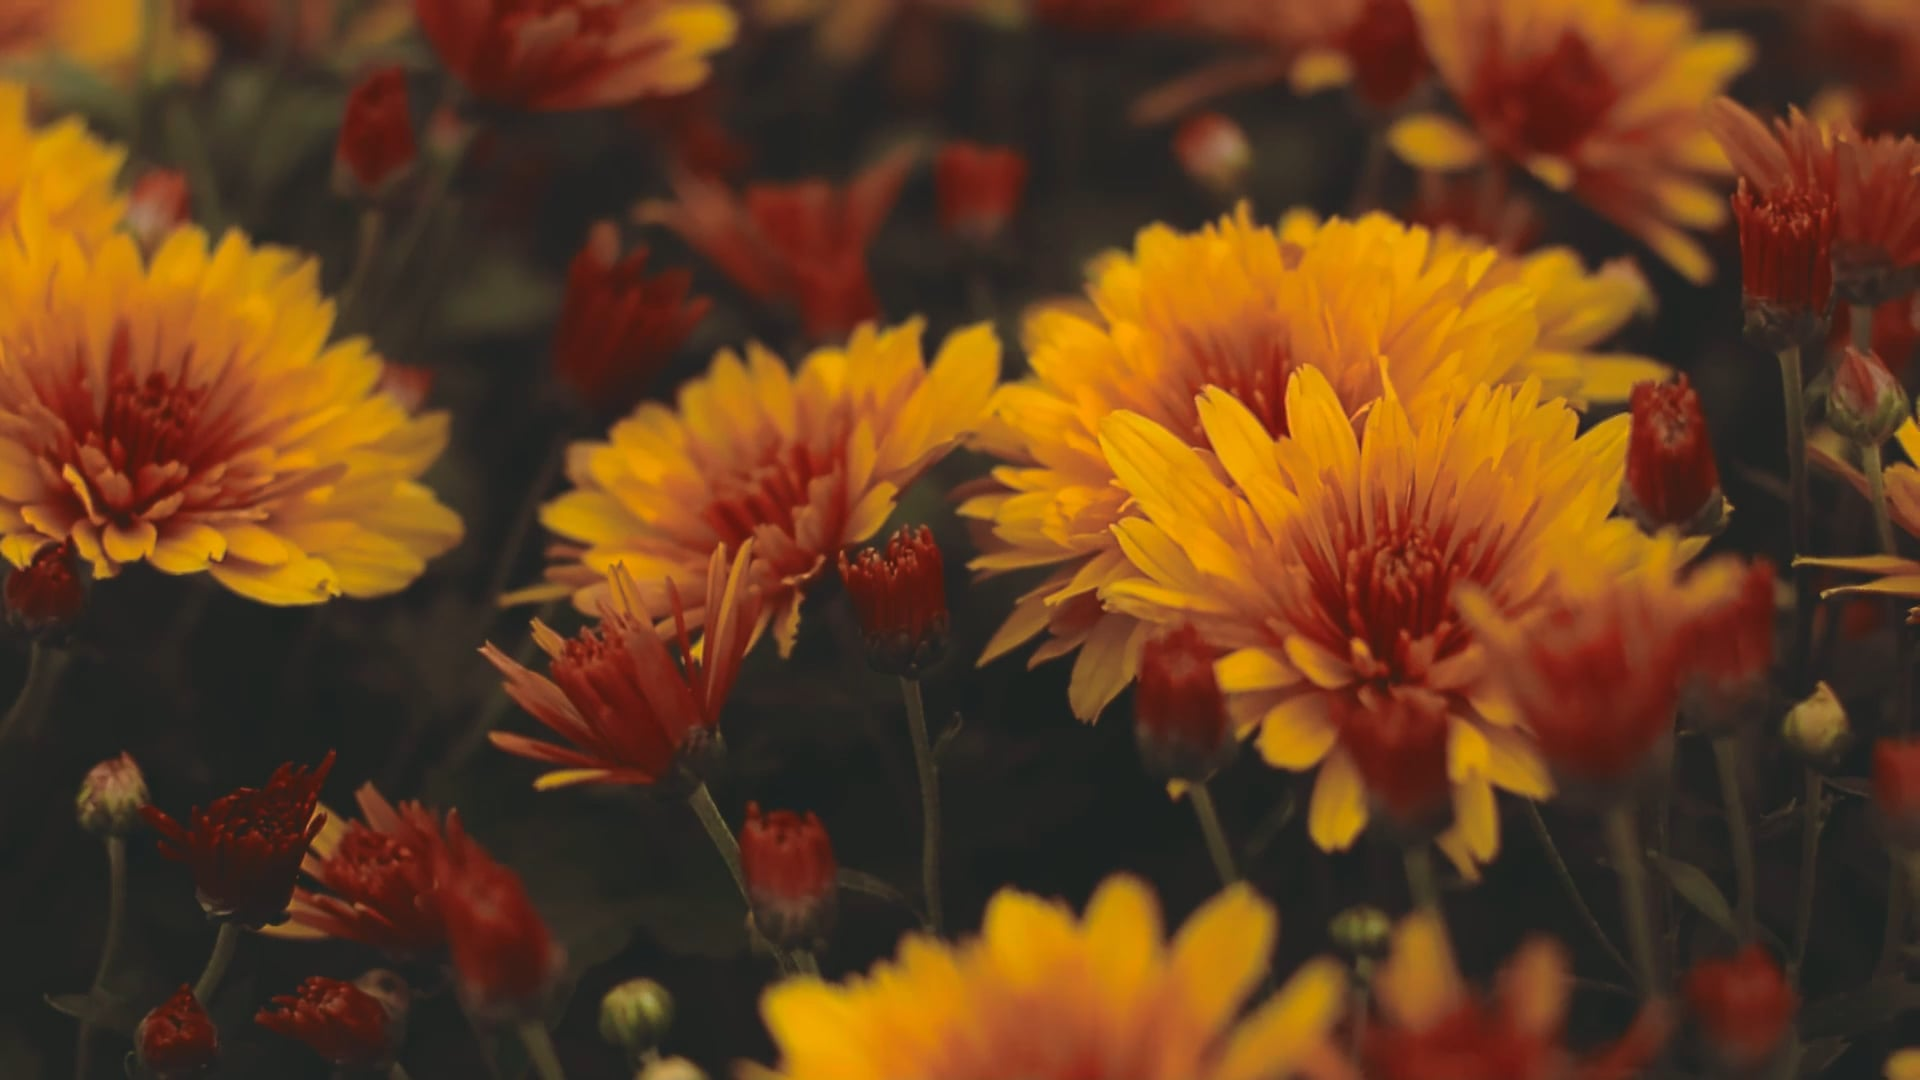 Combination Of Red And Yellow Flowers Free Stock Photo